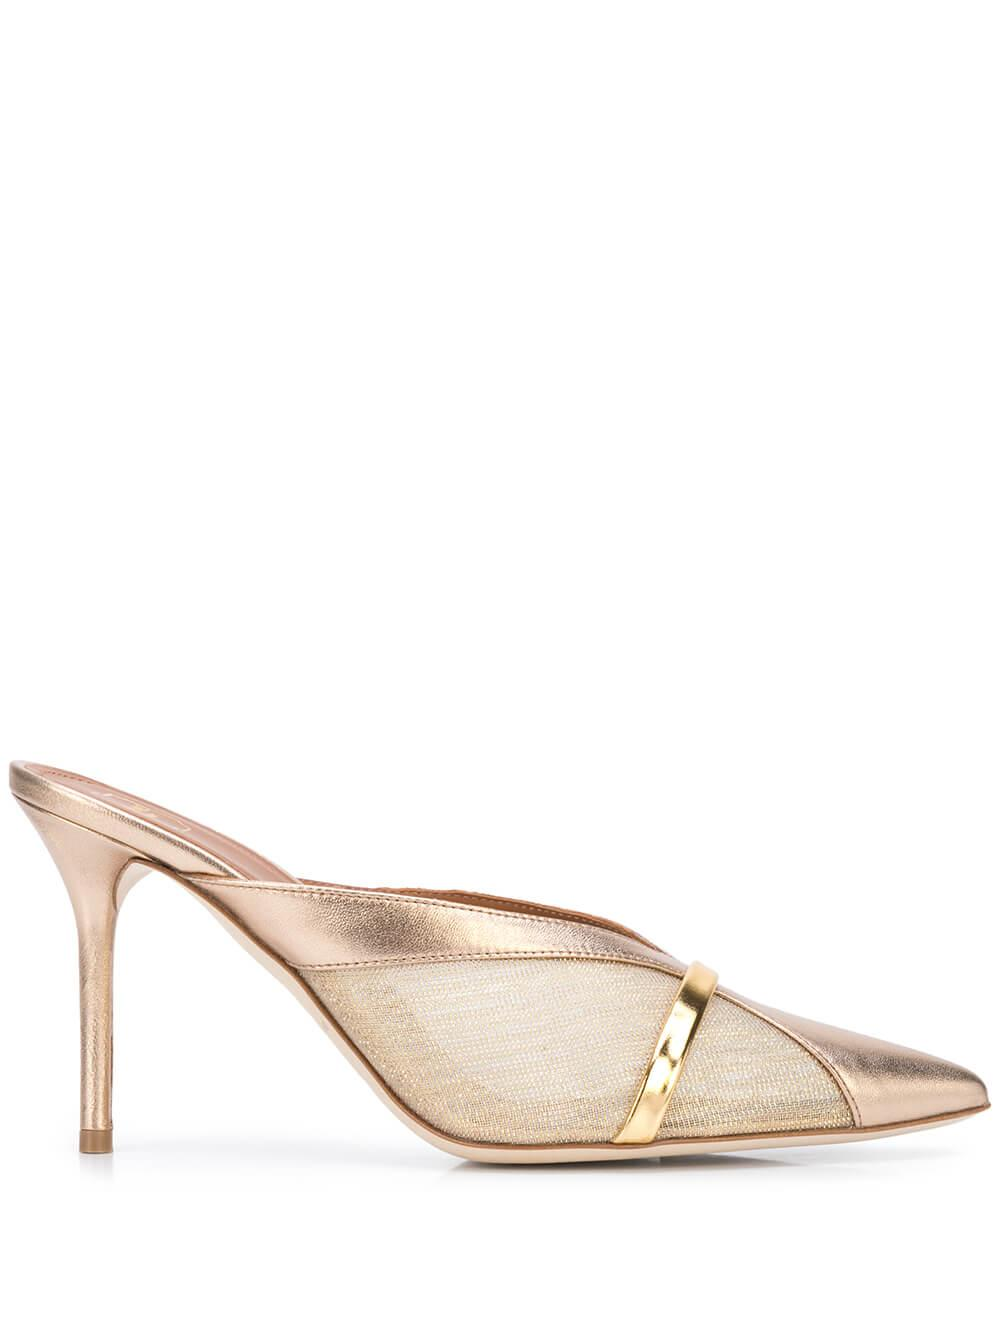 Bobbi Metallic Nappa Mesh 85mm Mule Item # BOBBI85-2